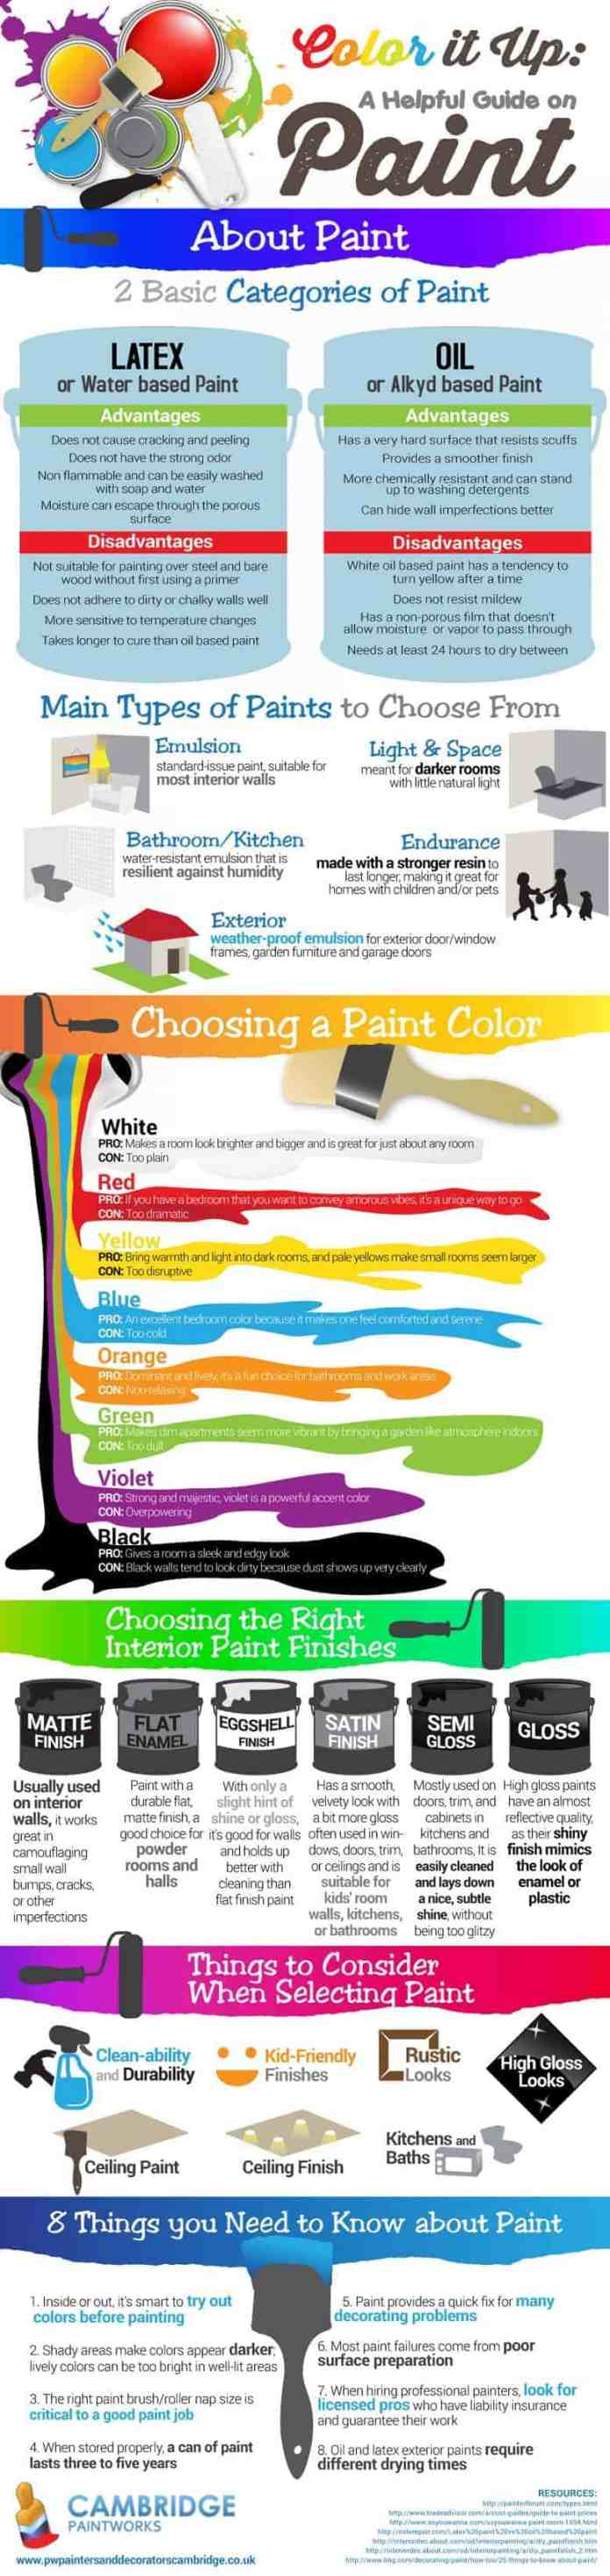 painting business guideline